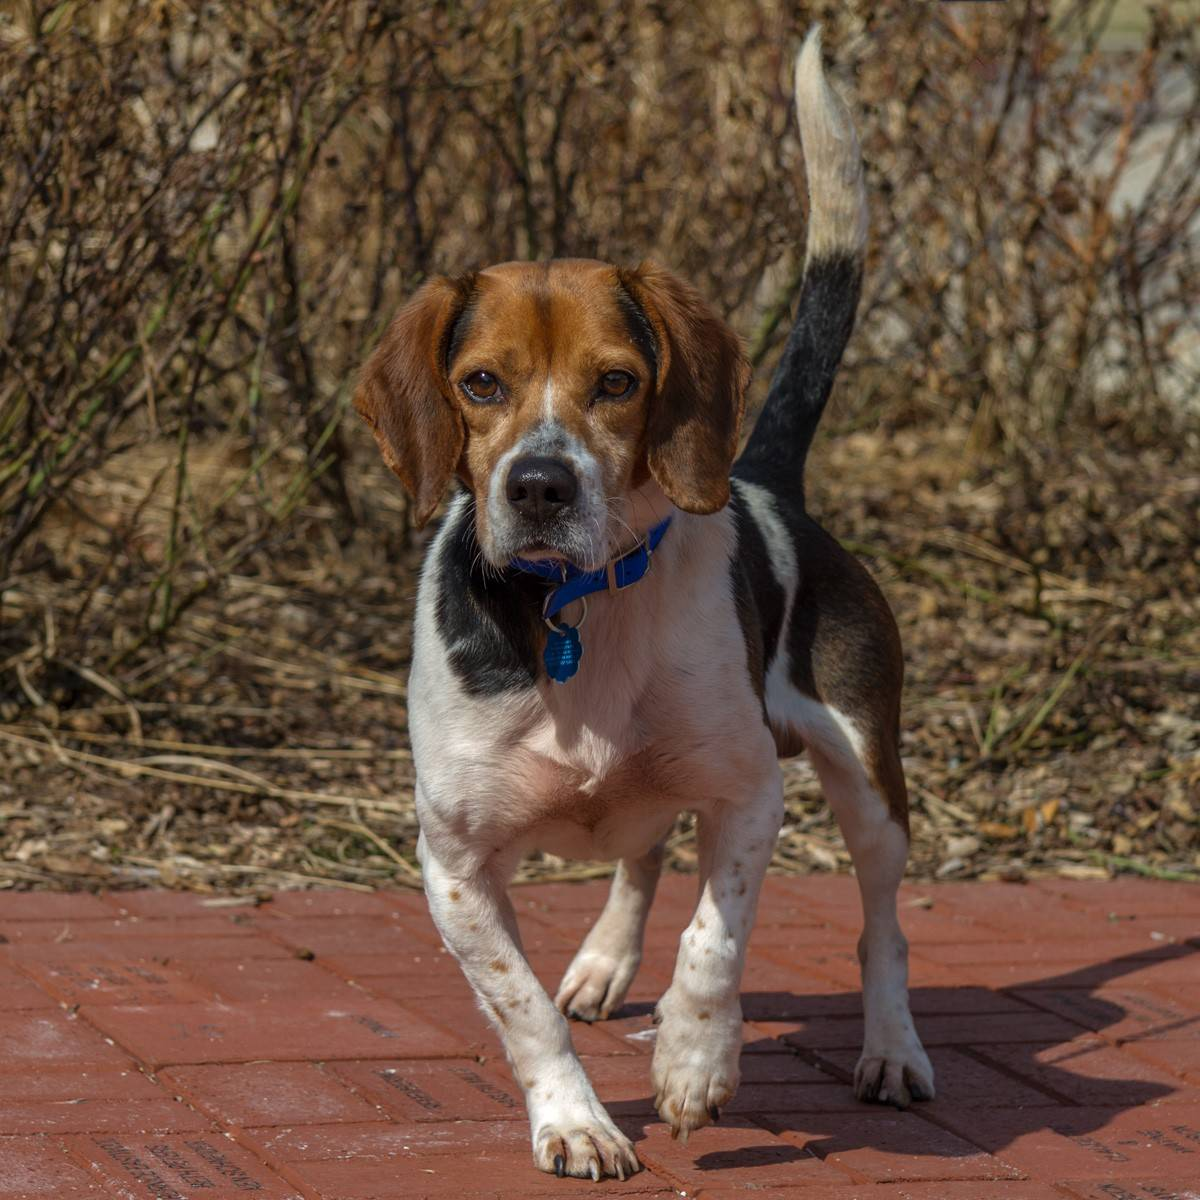 Snickers is a male, six-year-old Beagle, who weighs about 27 pounds. Snickers is seeking his forever home, could it be yours?